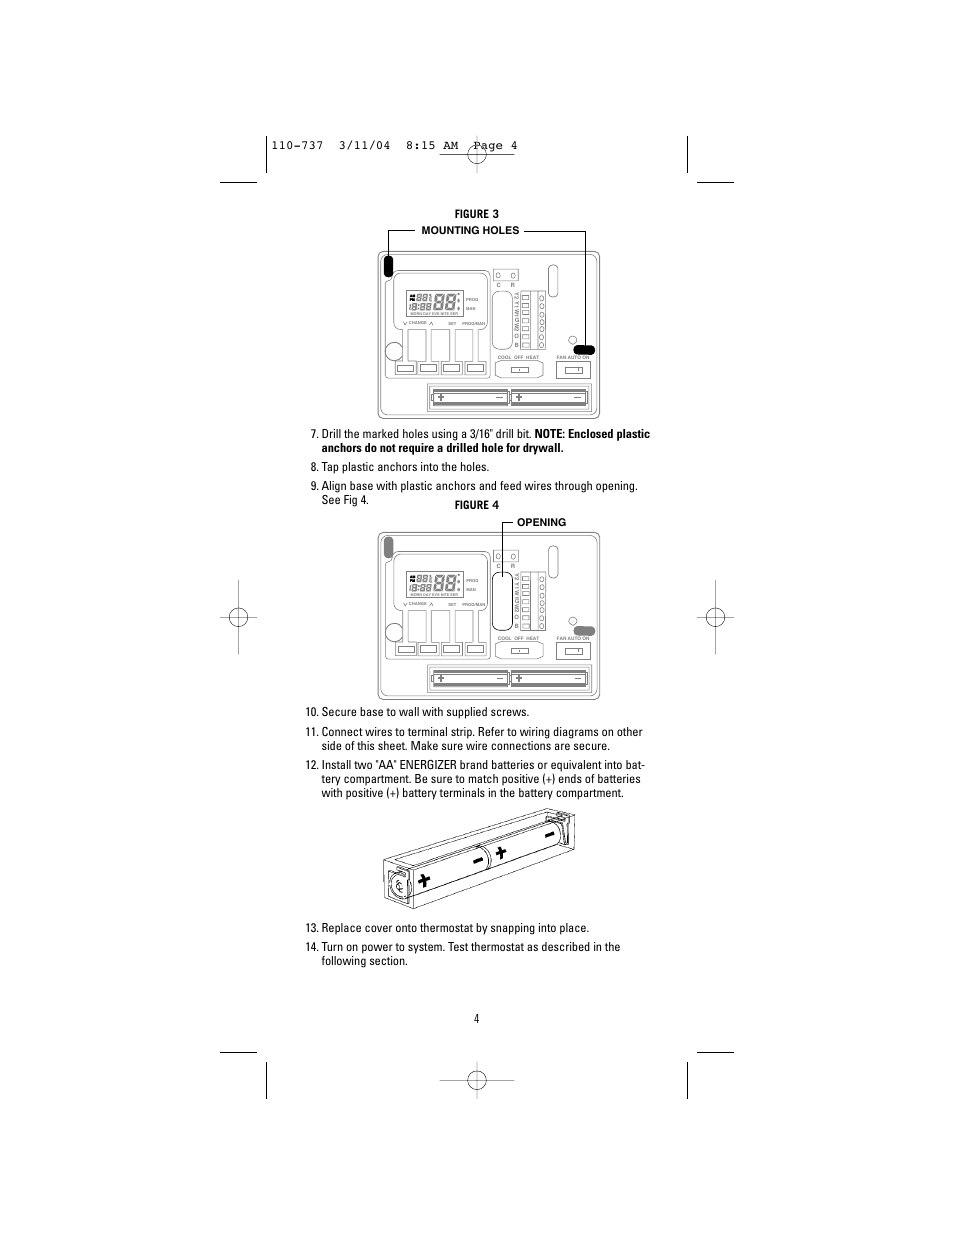 Robertshaw Heat Pump Thermostat Wiring Diagram | Best Wiring Liry on zone valve wiring schematic, robertshaw ignition control schematic, gas fireplace wiring schematic, robertshaw safety valve, robertshaw control module schematic, trane heat pump schematic, robertshaw gas valves troubleshooting, robertshaw gas valves 7000, robertshaw ignition control diagram,